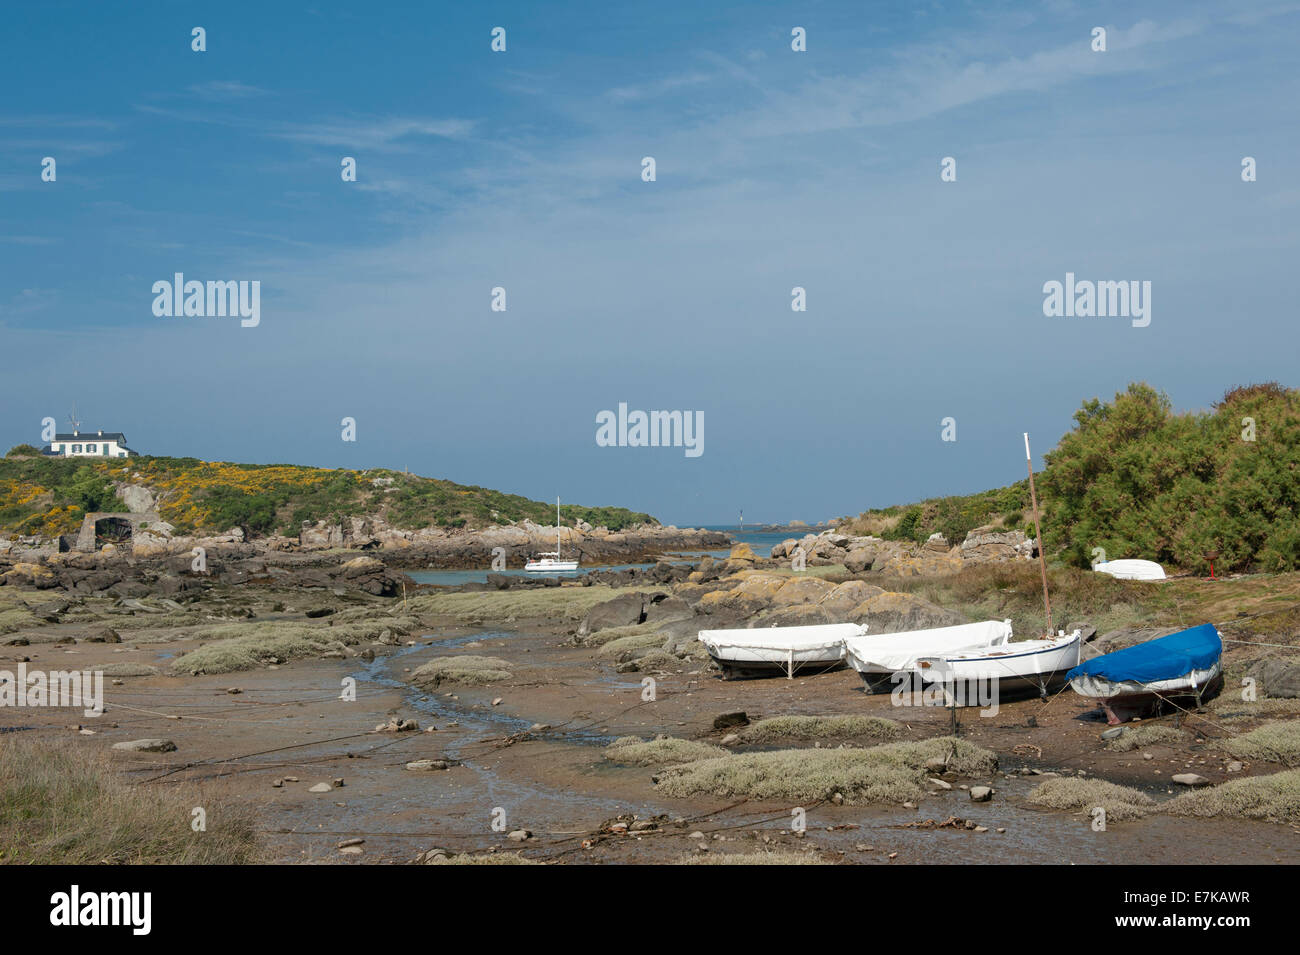 Boats moored at low tide in an inlet  of the Chausey Channel at Grand-Île, Chausey Islands, Basse-Normandie, - Stock Image